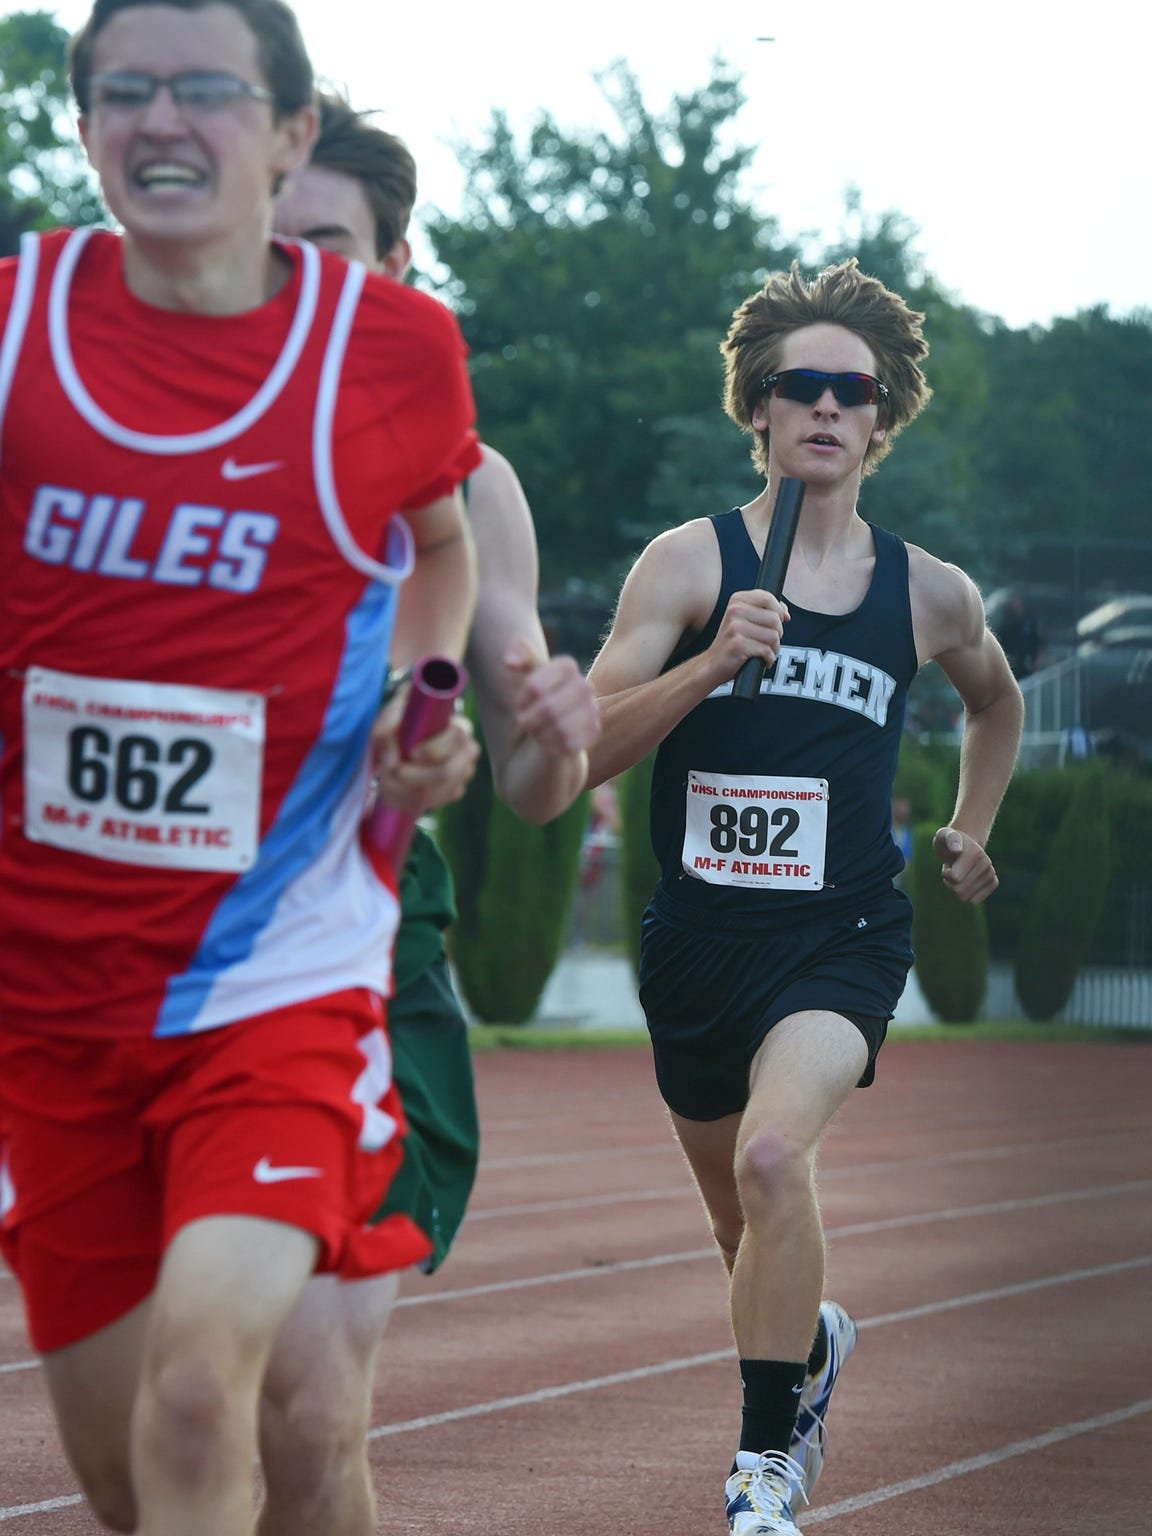 Robert E. Lee's Dylan Wimer races with the baton in the boys' 4x800 meter relay during the first day of the state 2A track championships in Radford on Friday, June 5, 2015.